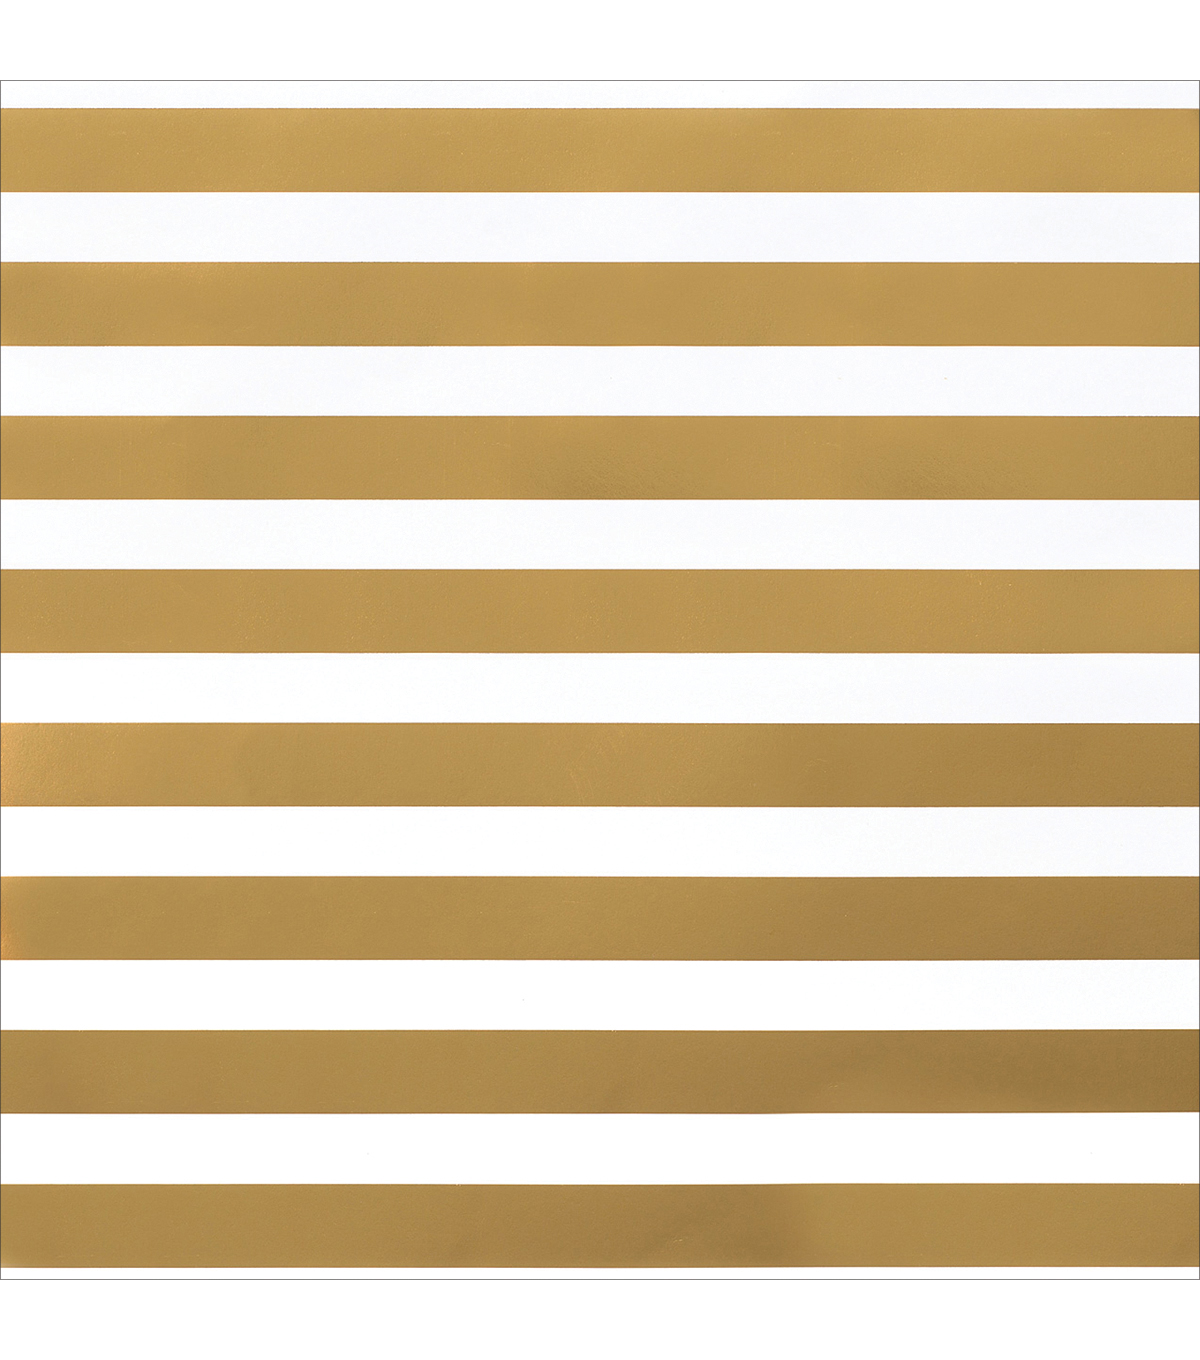 American Crafts Diy 2 Thick Stripe On White Specialty Cardstock